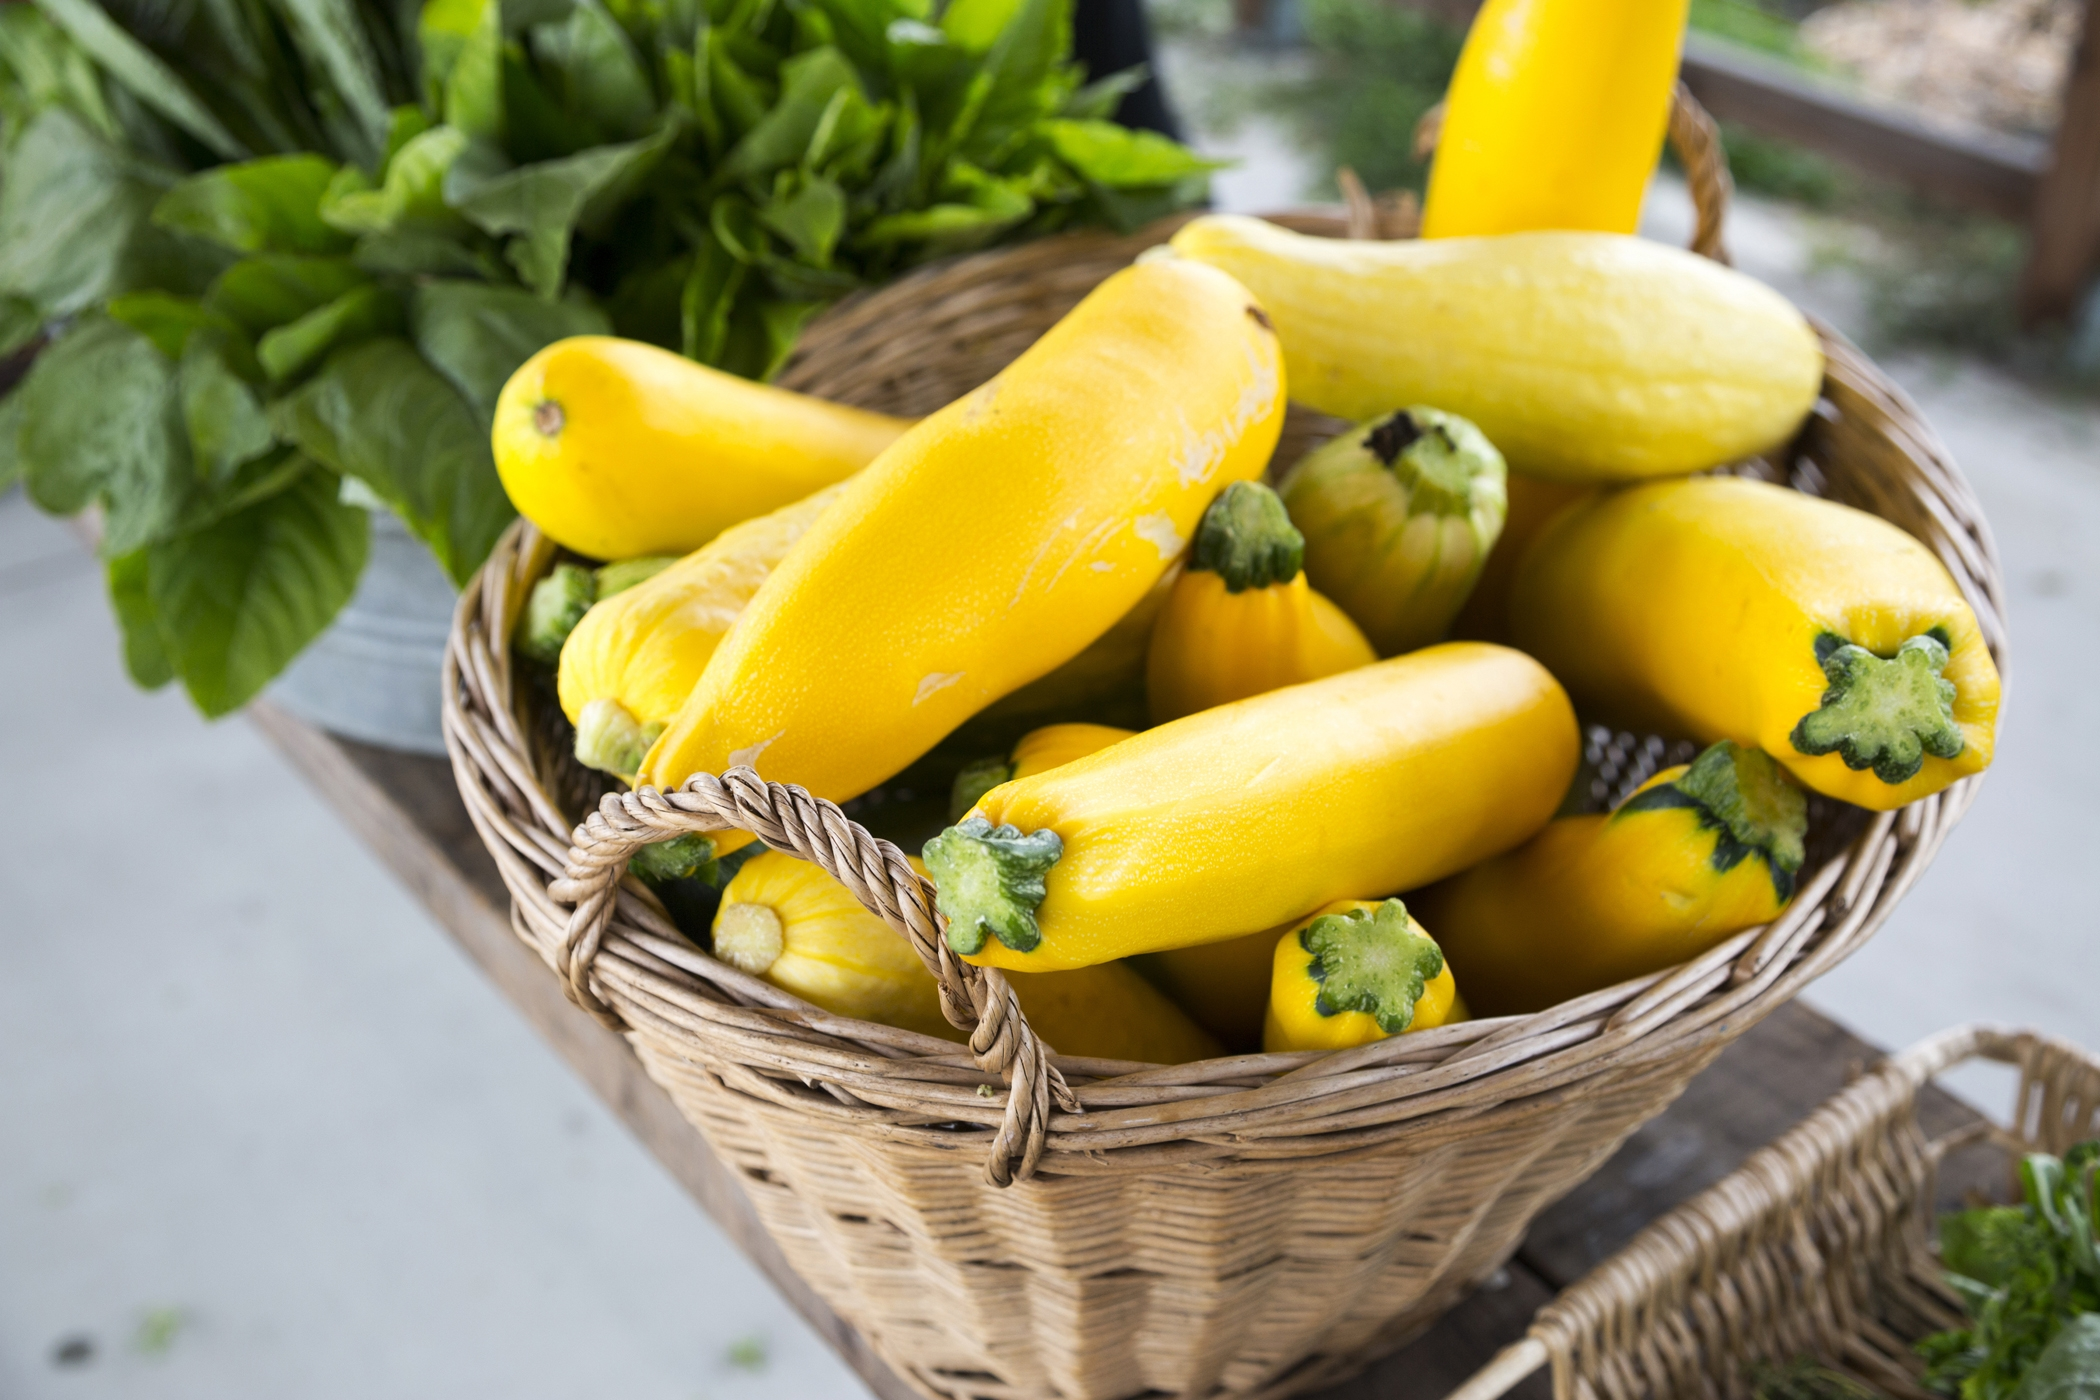 Yellow squash from City Slicker Farms in West Oakland.